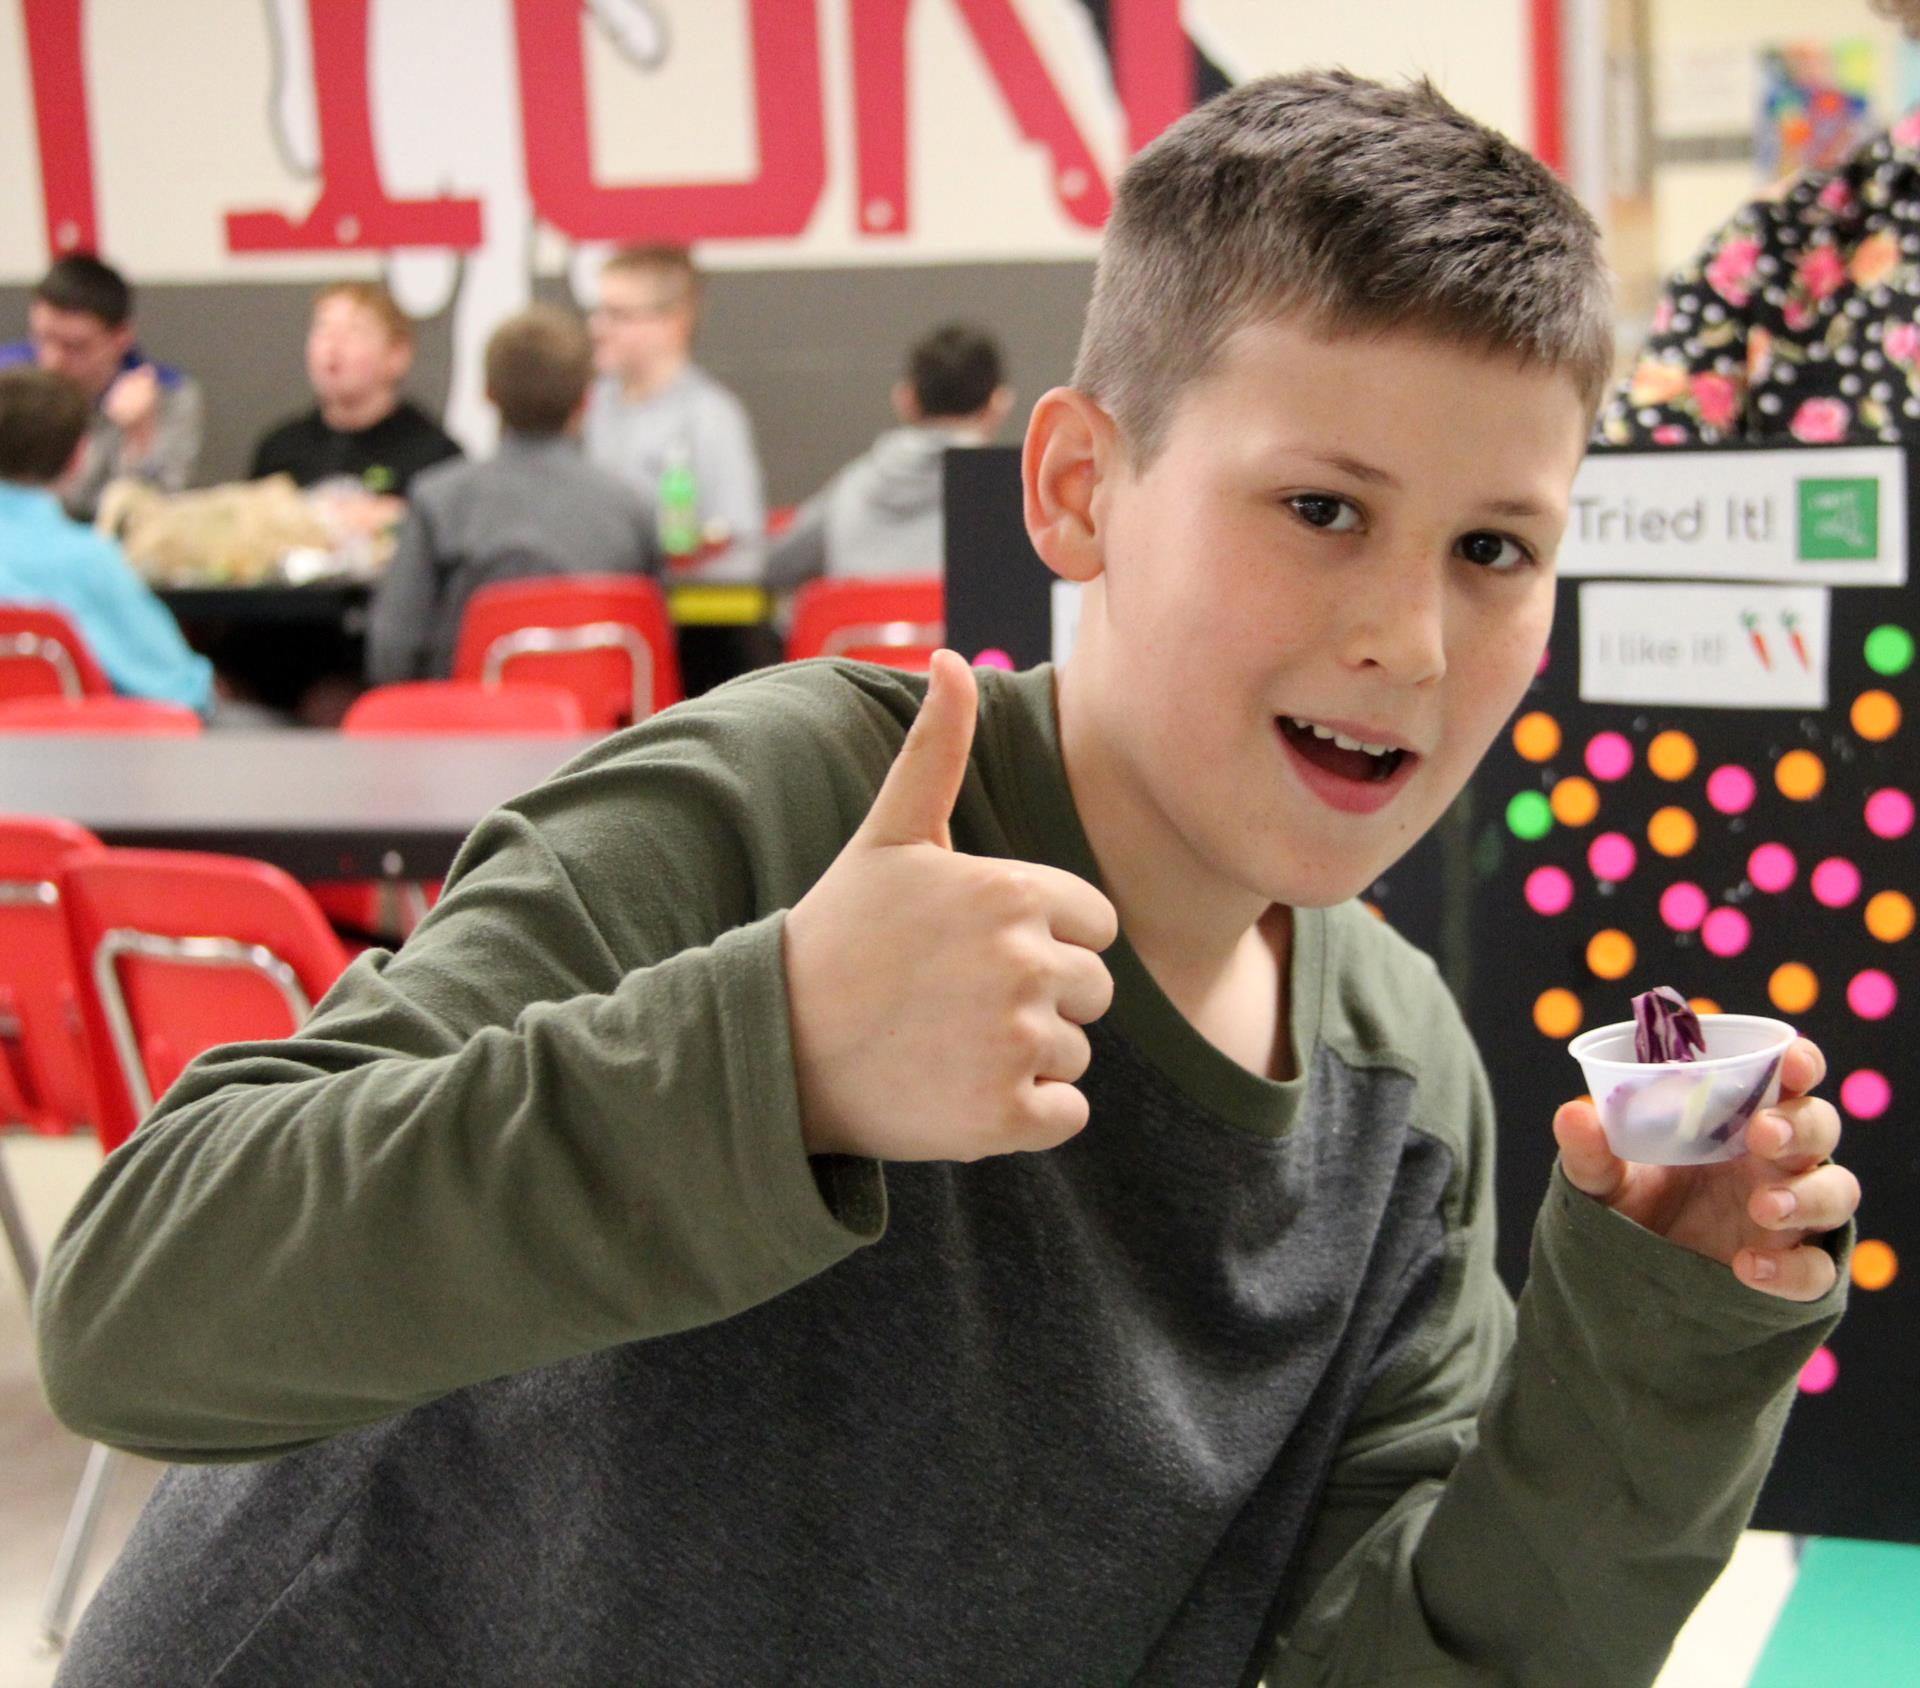 student giving thumbs up for cabbage salad